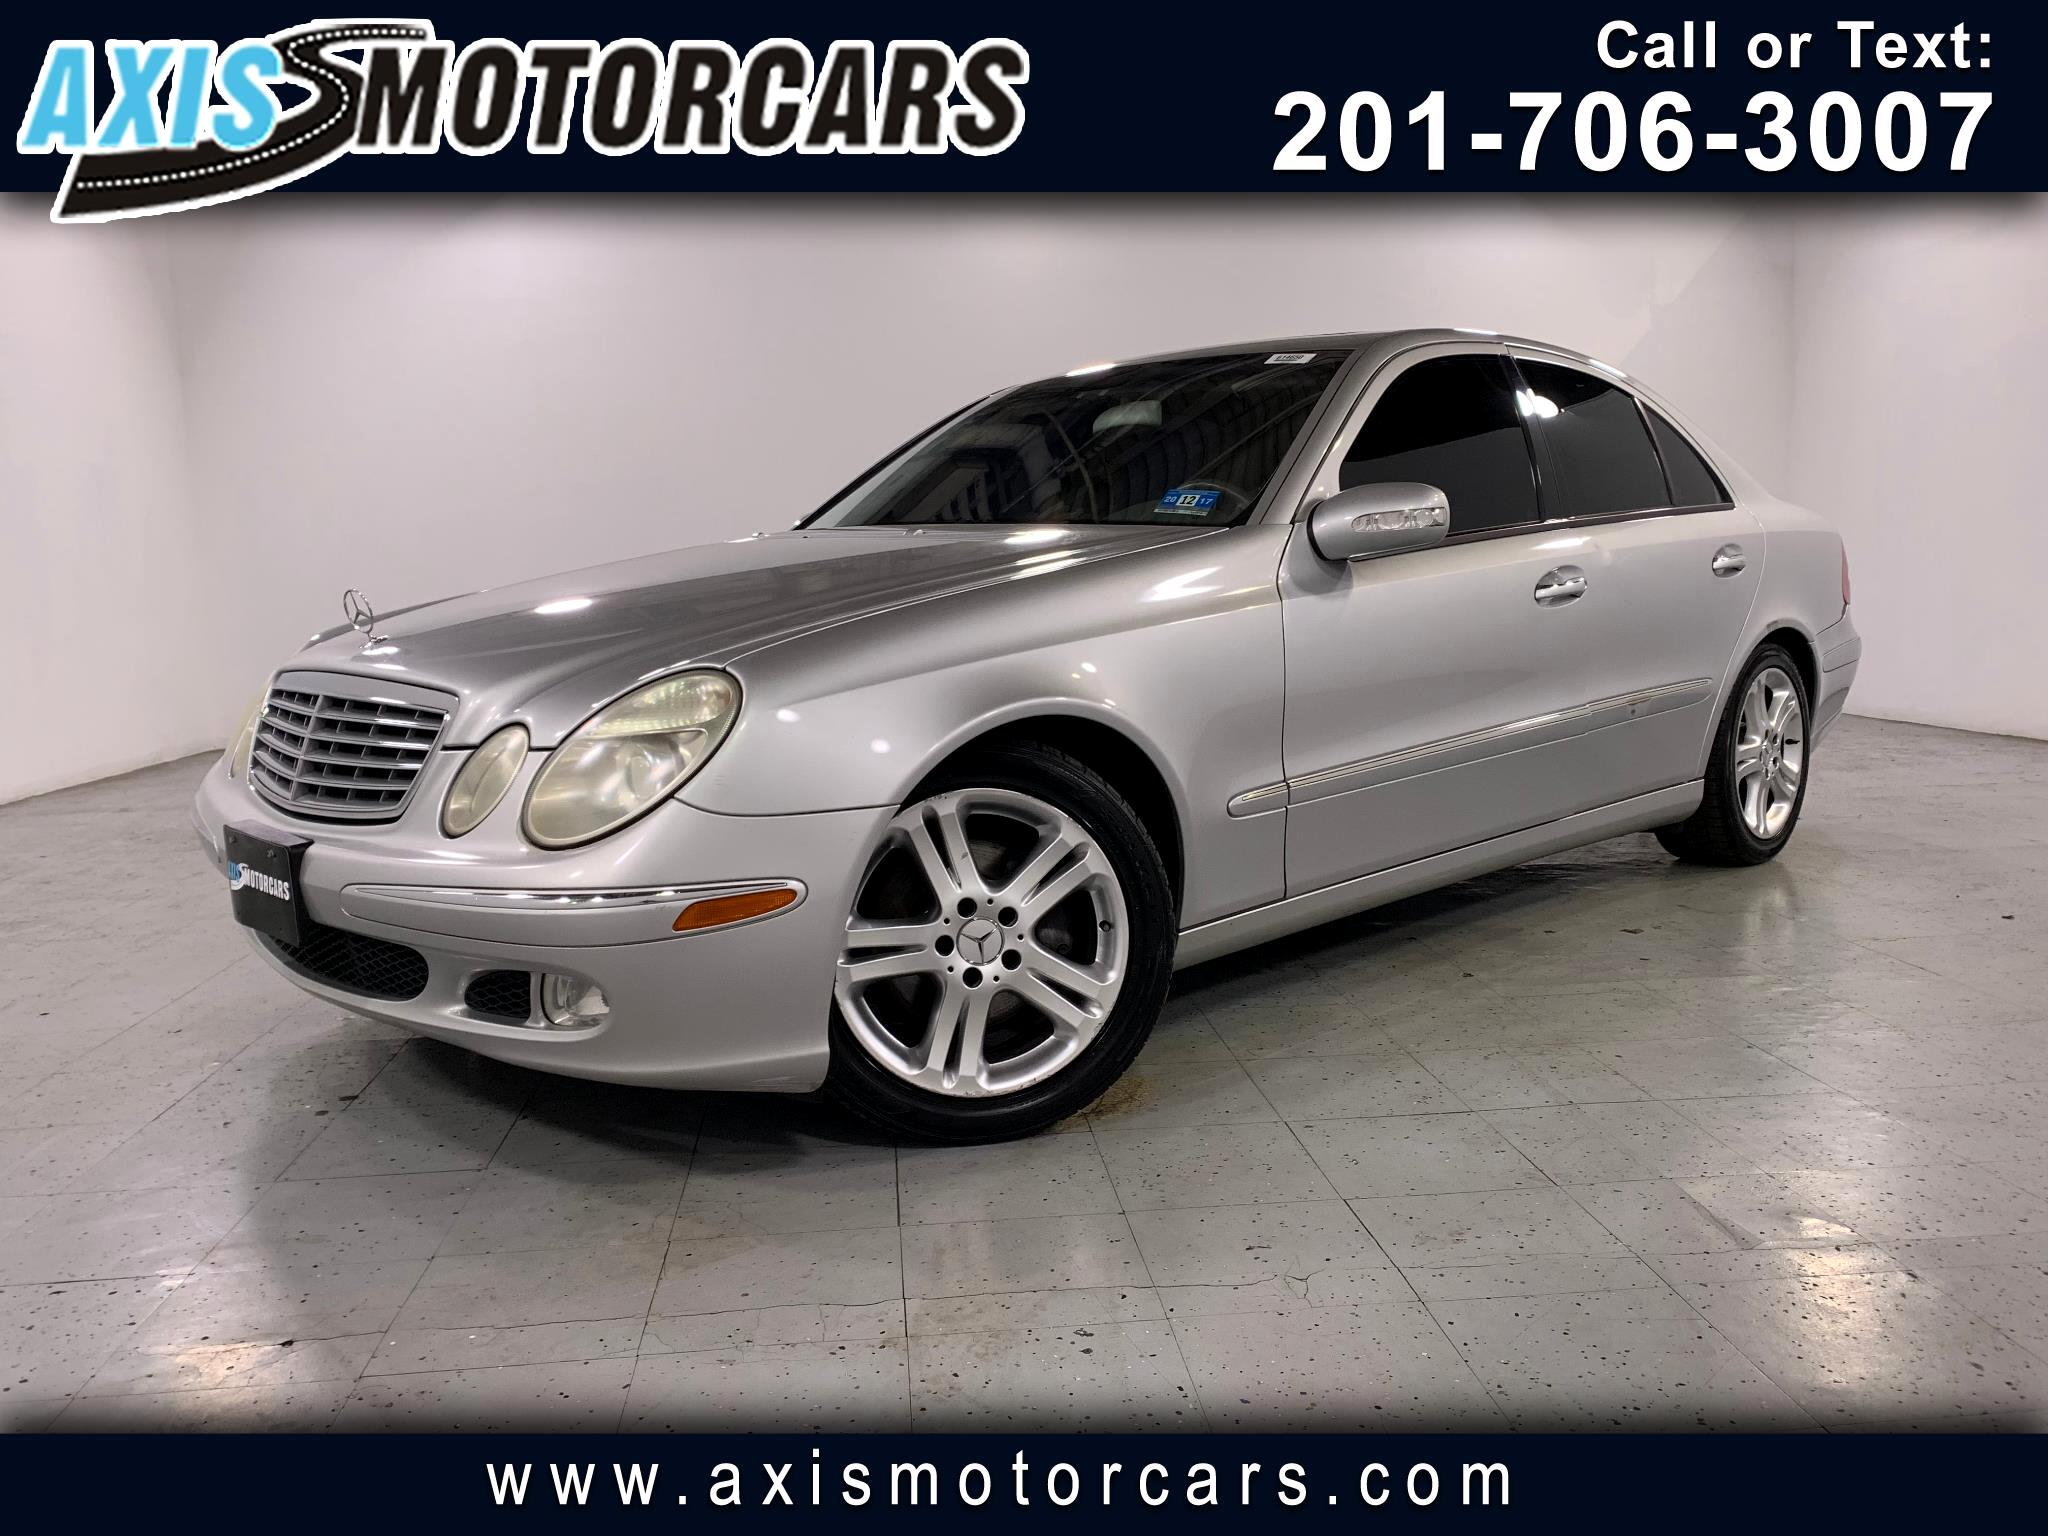 2005 Mercedes-Benz E500 w/Sunroof Navigation Leather